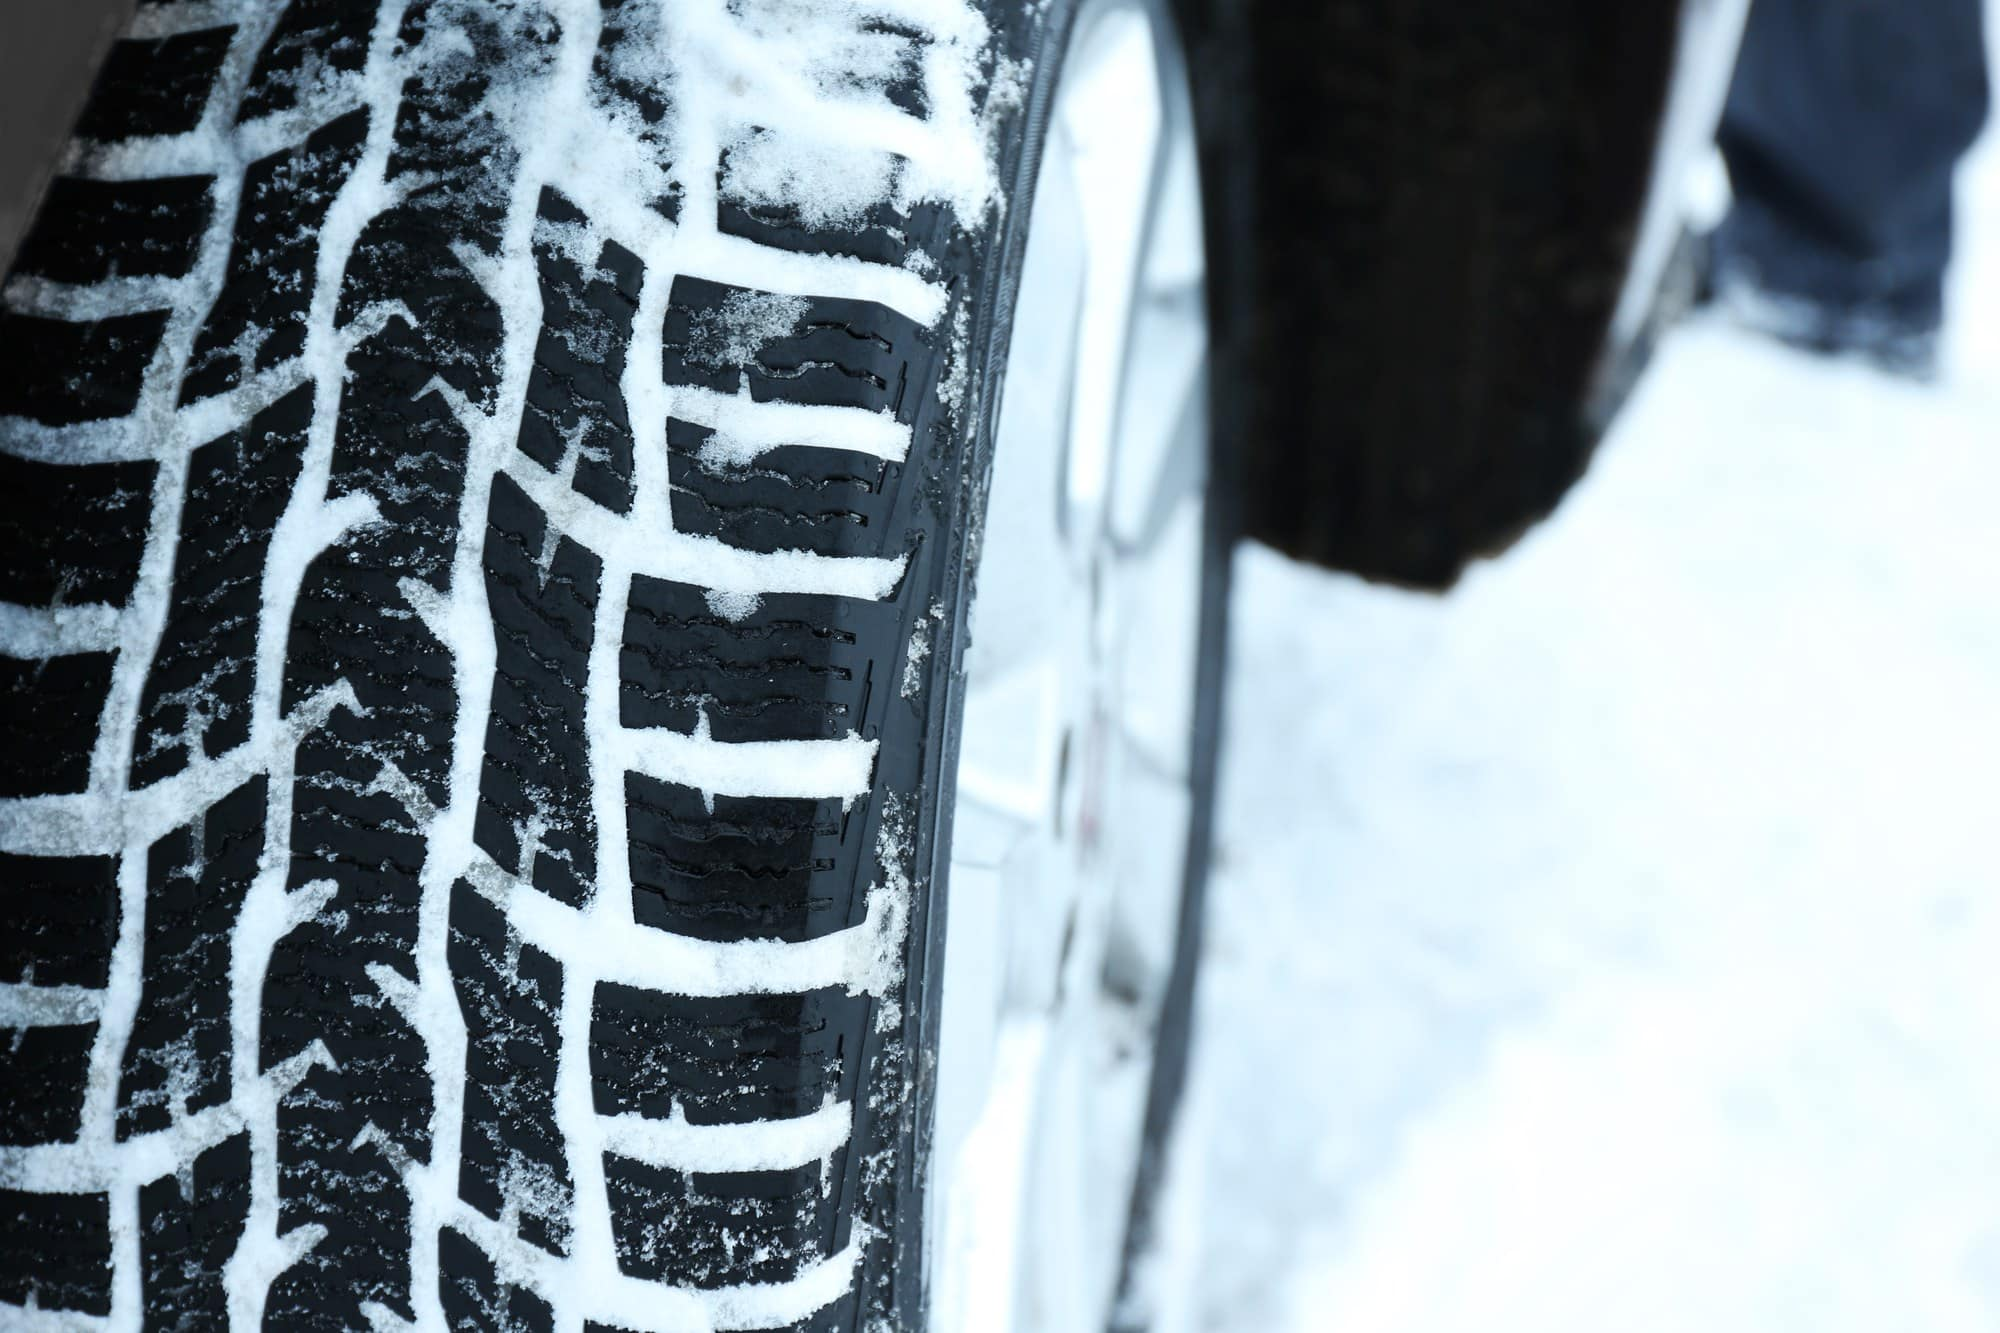 Inspect your tire's tread and inflation before your winter car trip